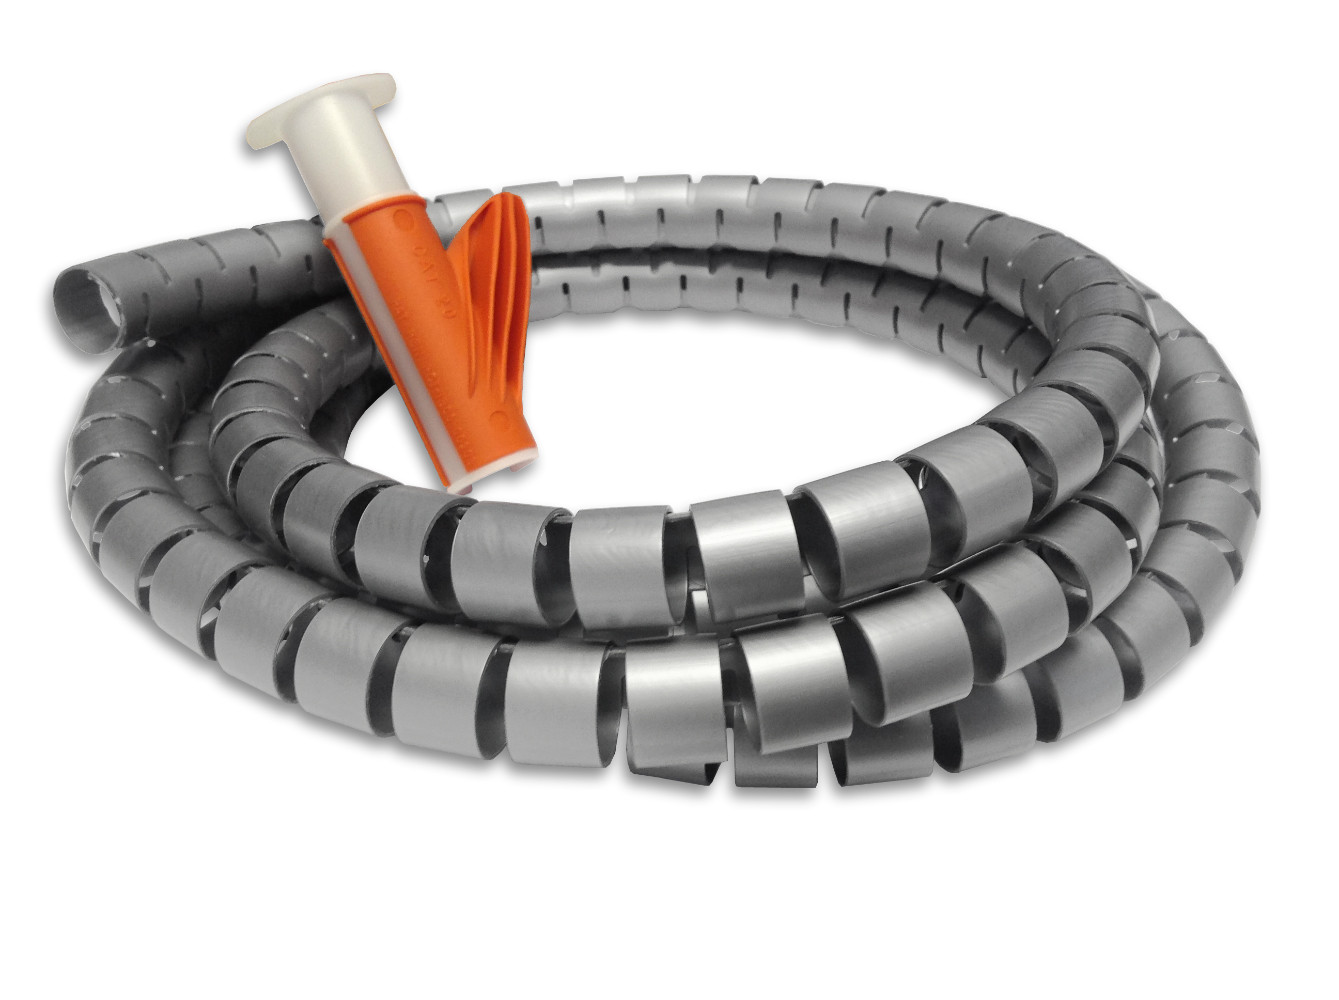 Cable Tidy and Applicator Tool Kit - 20PP - 2.5 mtr Silver/Grey